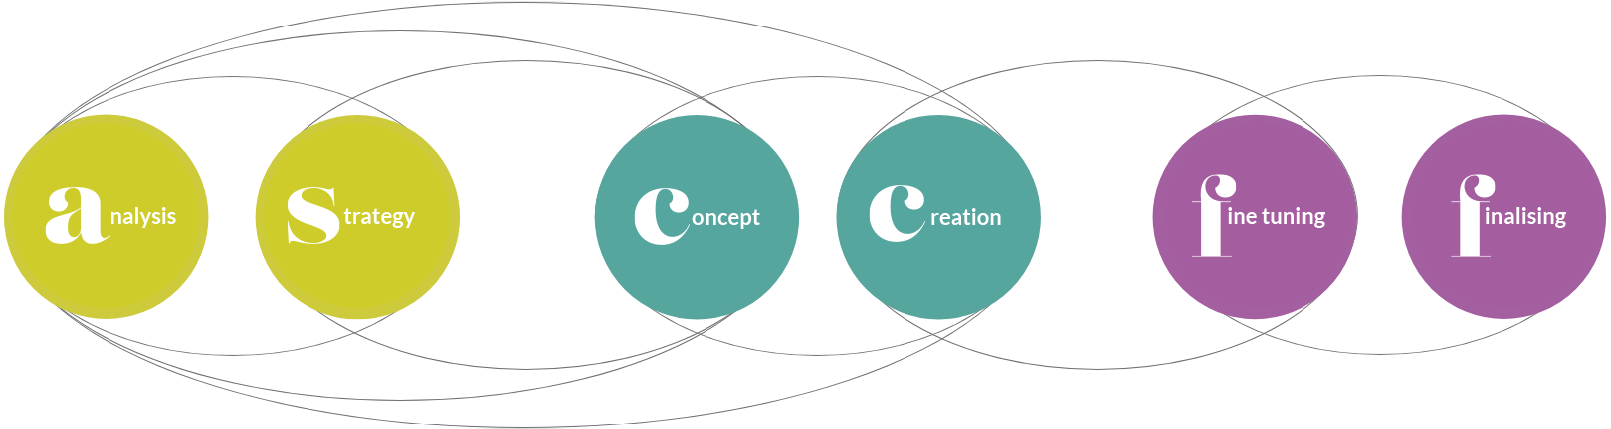 framework ATC design-thinking for branding and end to end communications